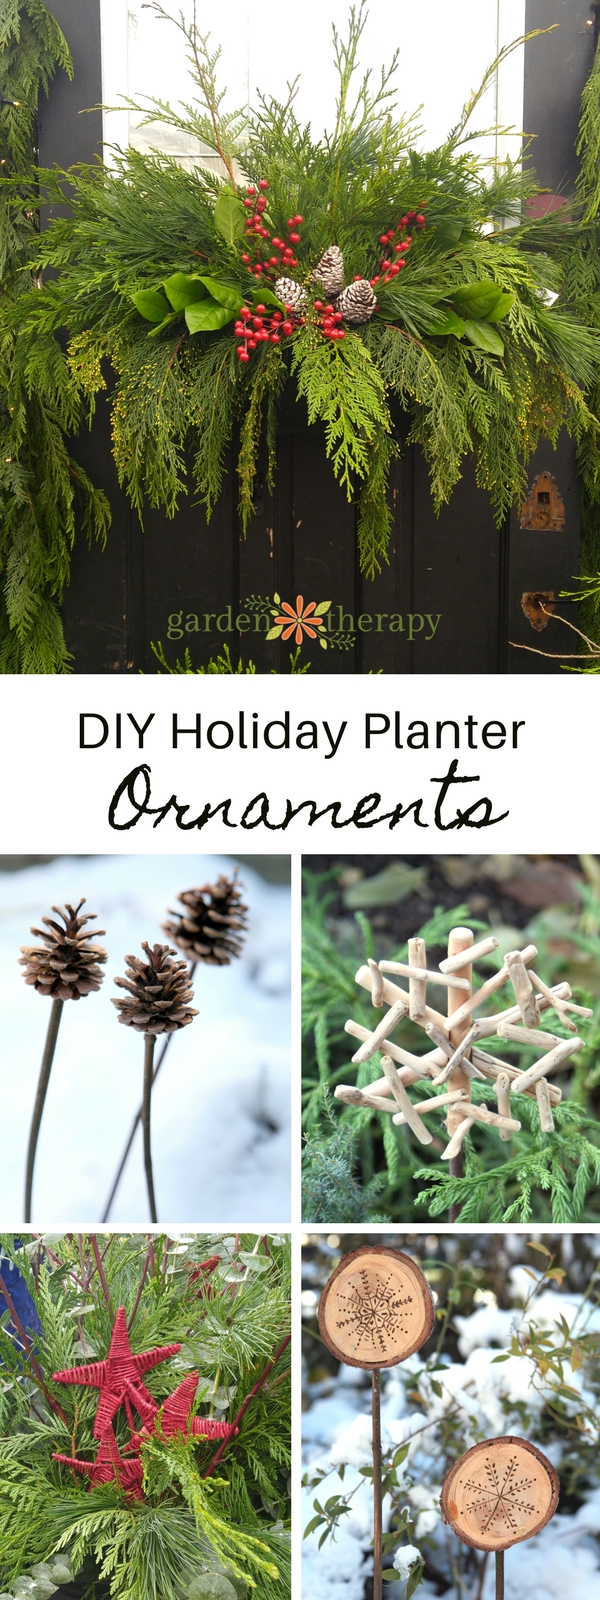 Easy and frugal DIY planter ornaments